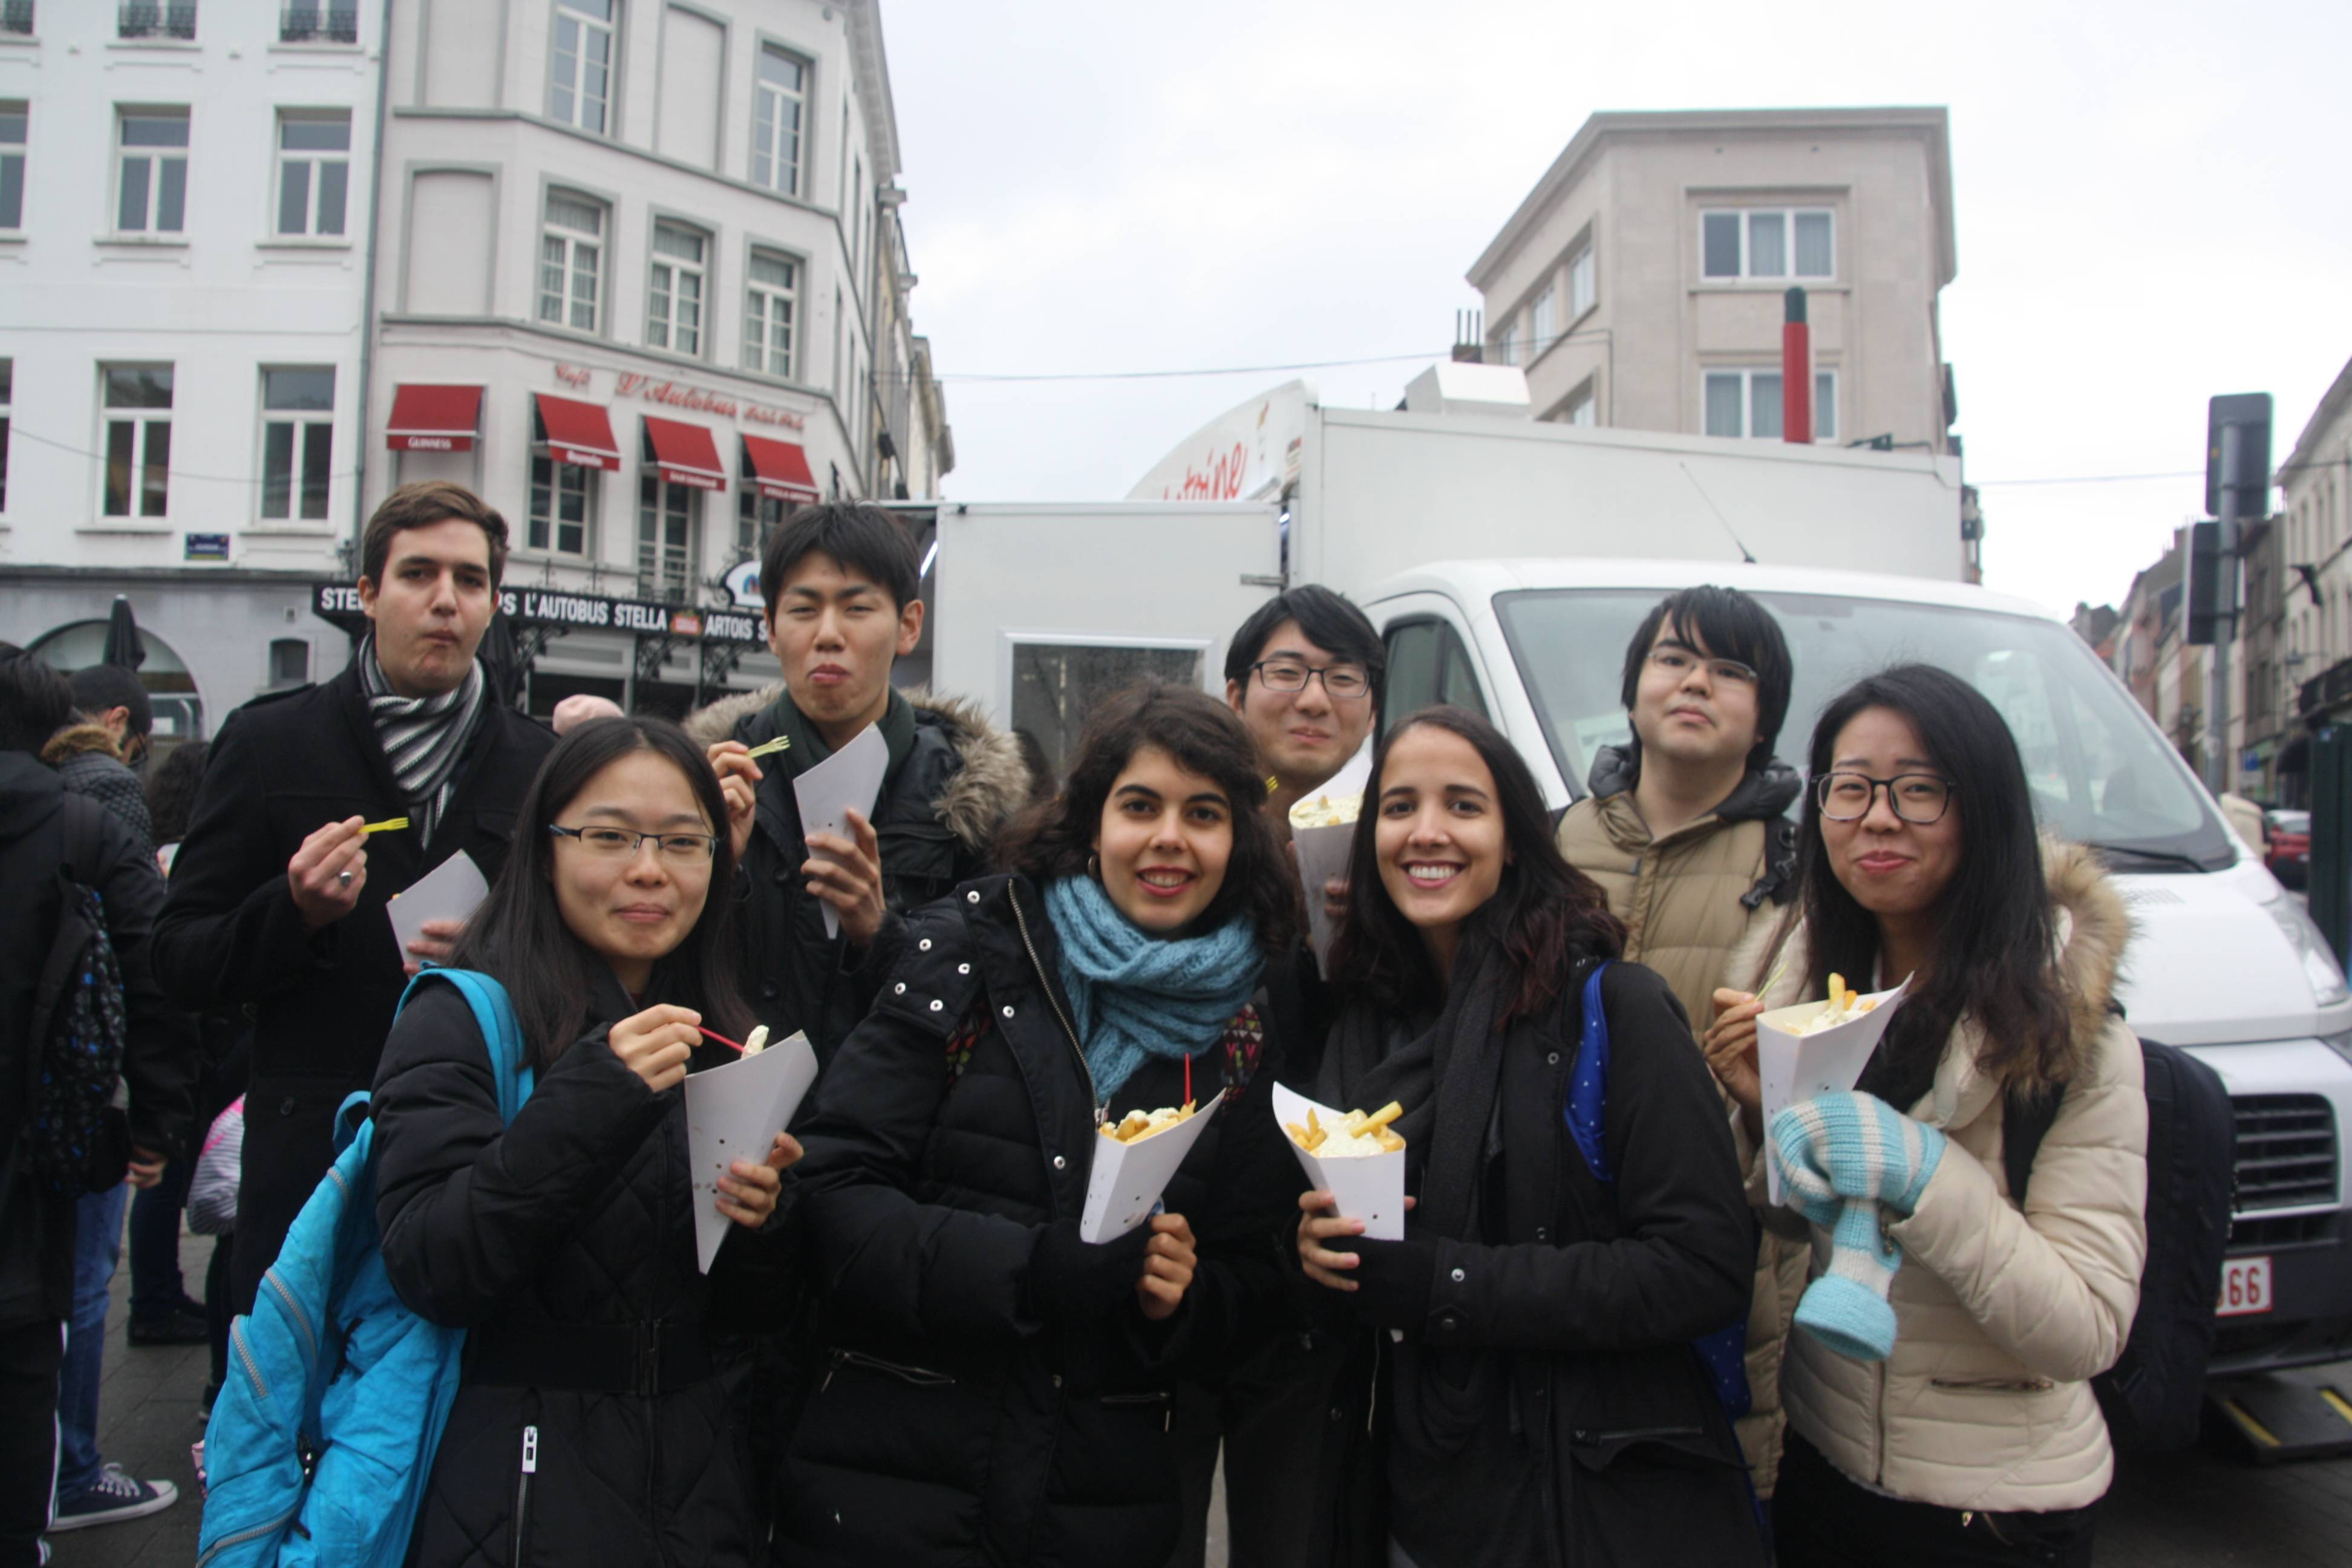 Students with bags of belgian fries in their hands